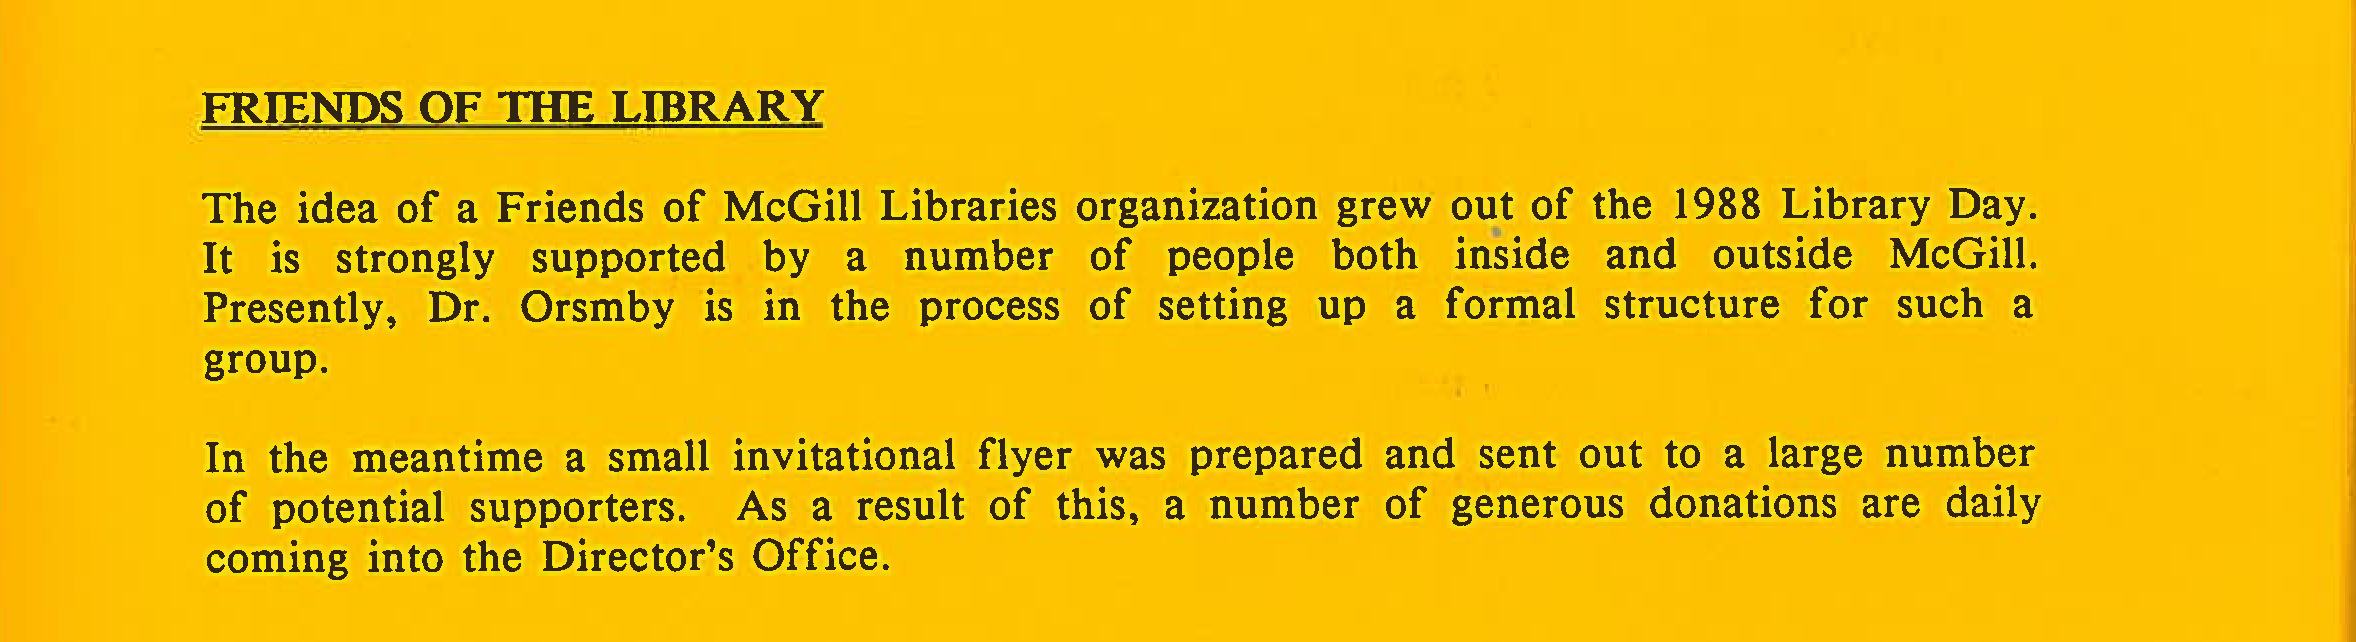 First official announcement regarding the establishment of the Friends of the Library. McGill University Libraries Gazette, May 1989.